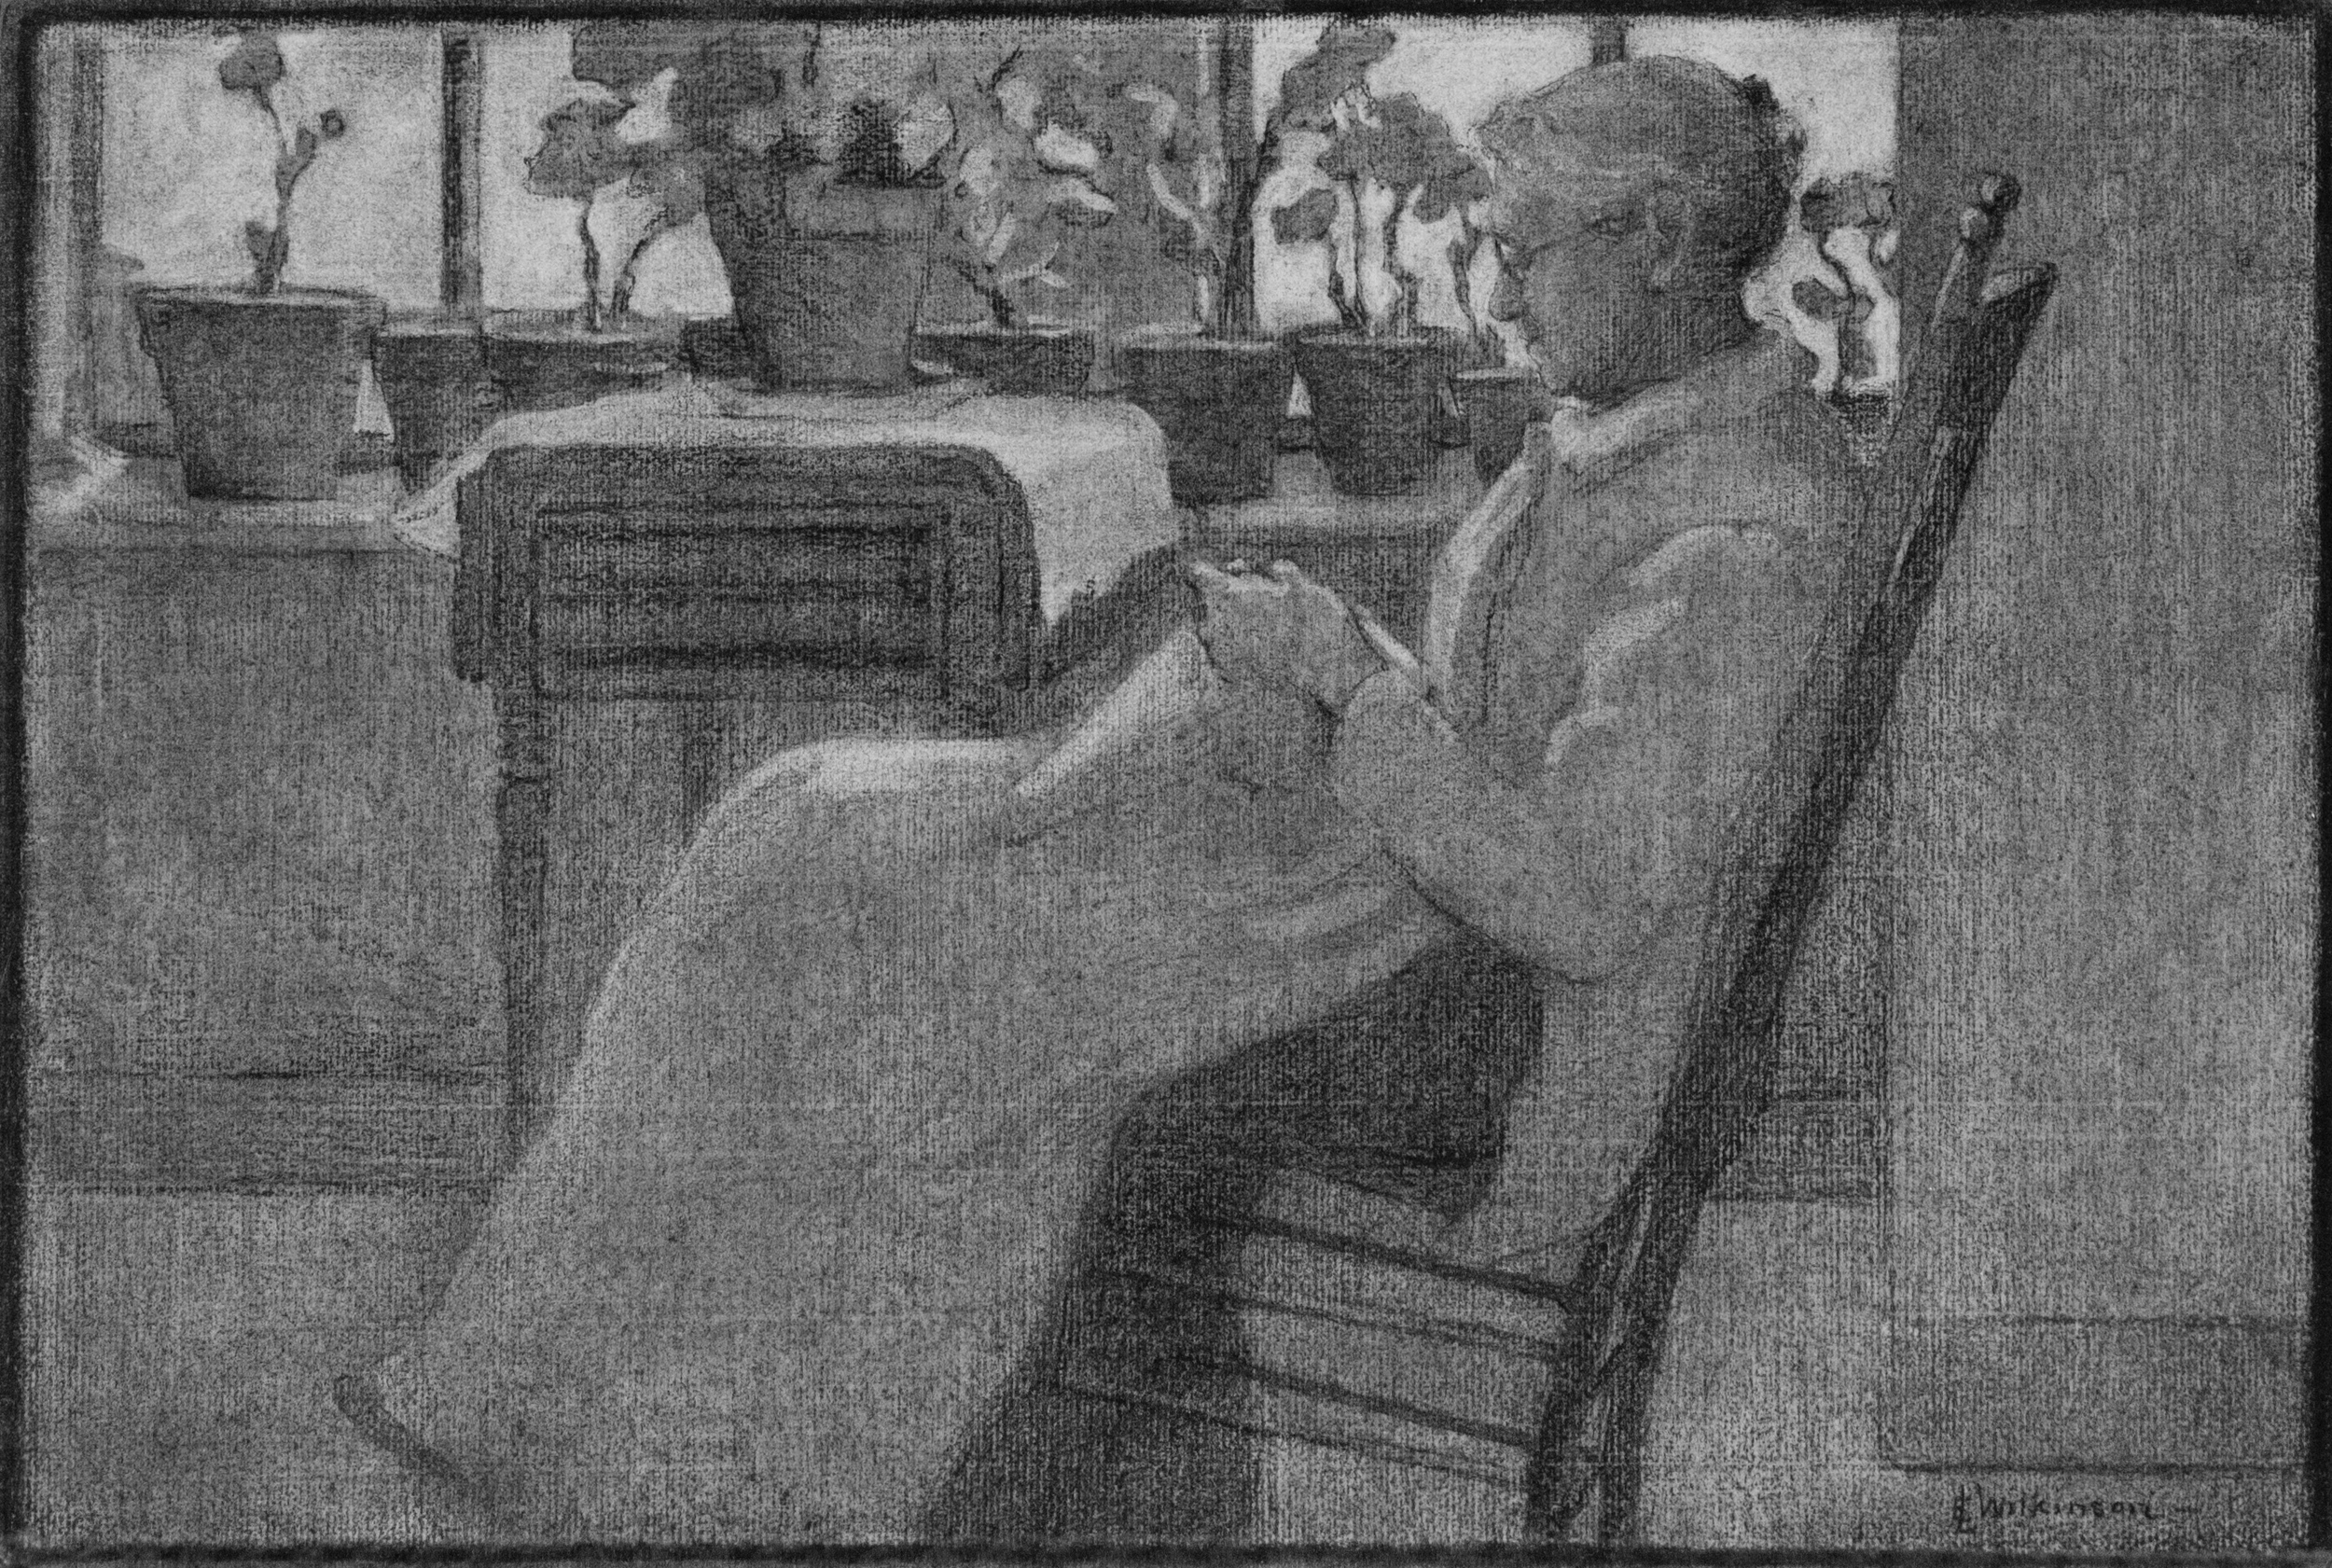 Old Woman in Chair (Charcoal) by Edith Lake Wilkinson